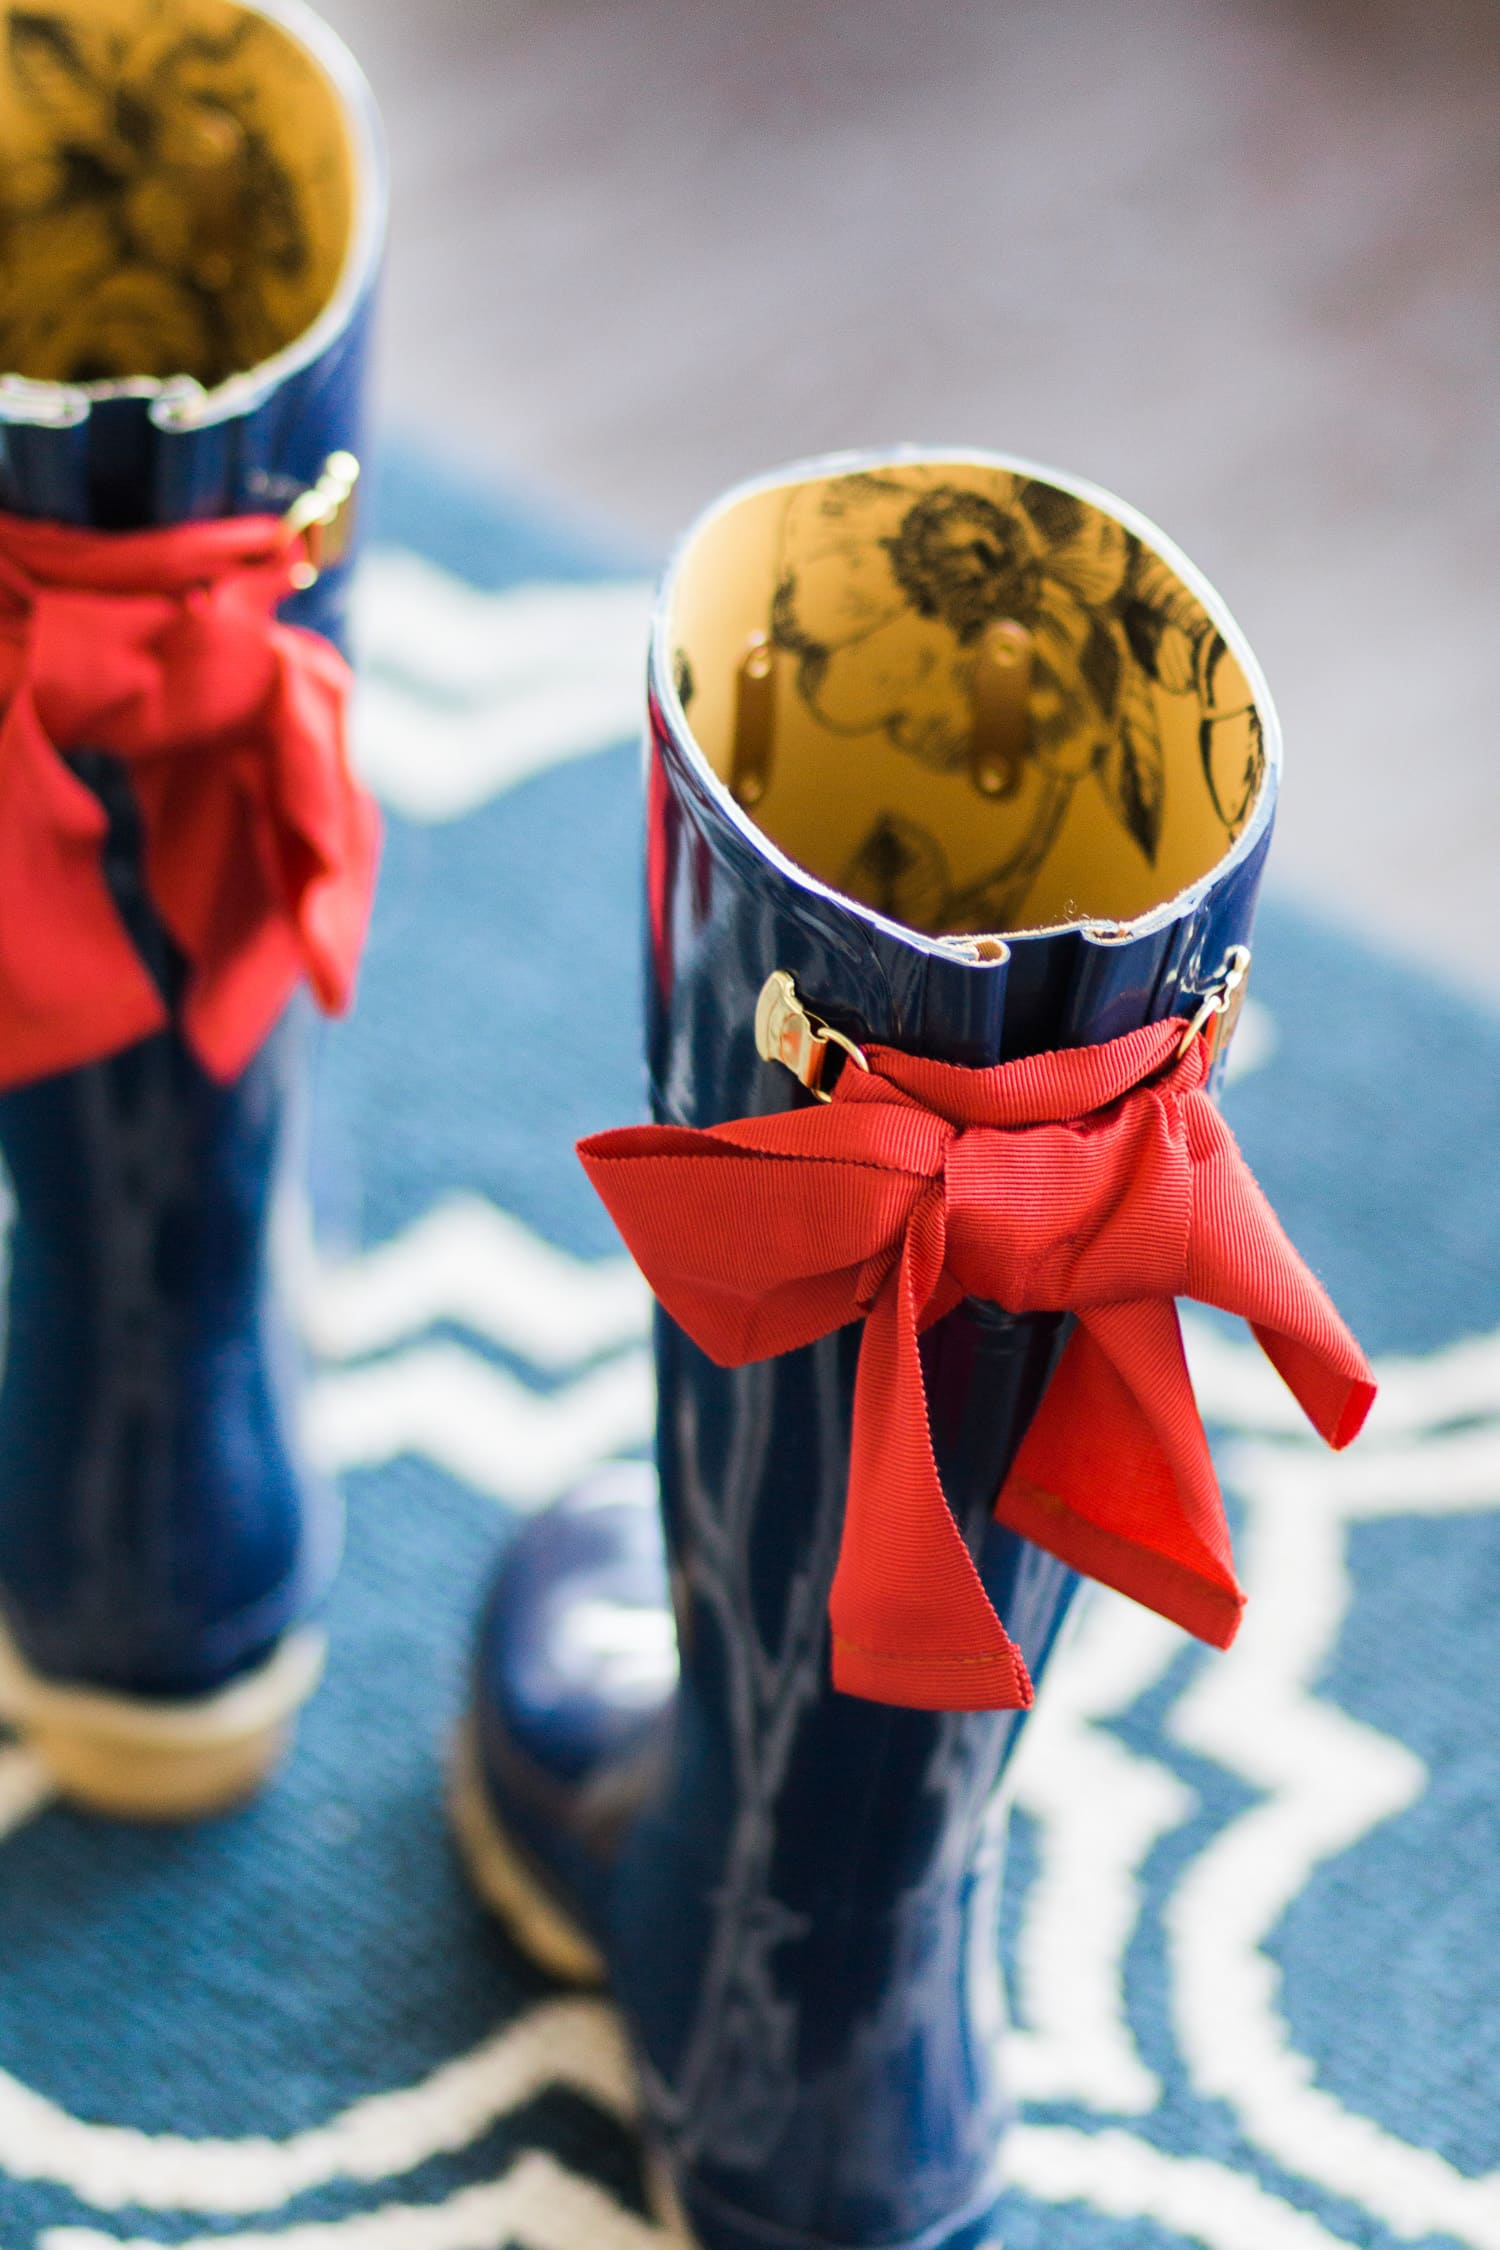 joules-evedon-rain-boots-navy-red-bow-6614